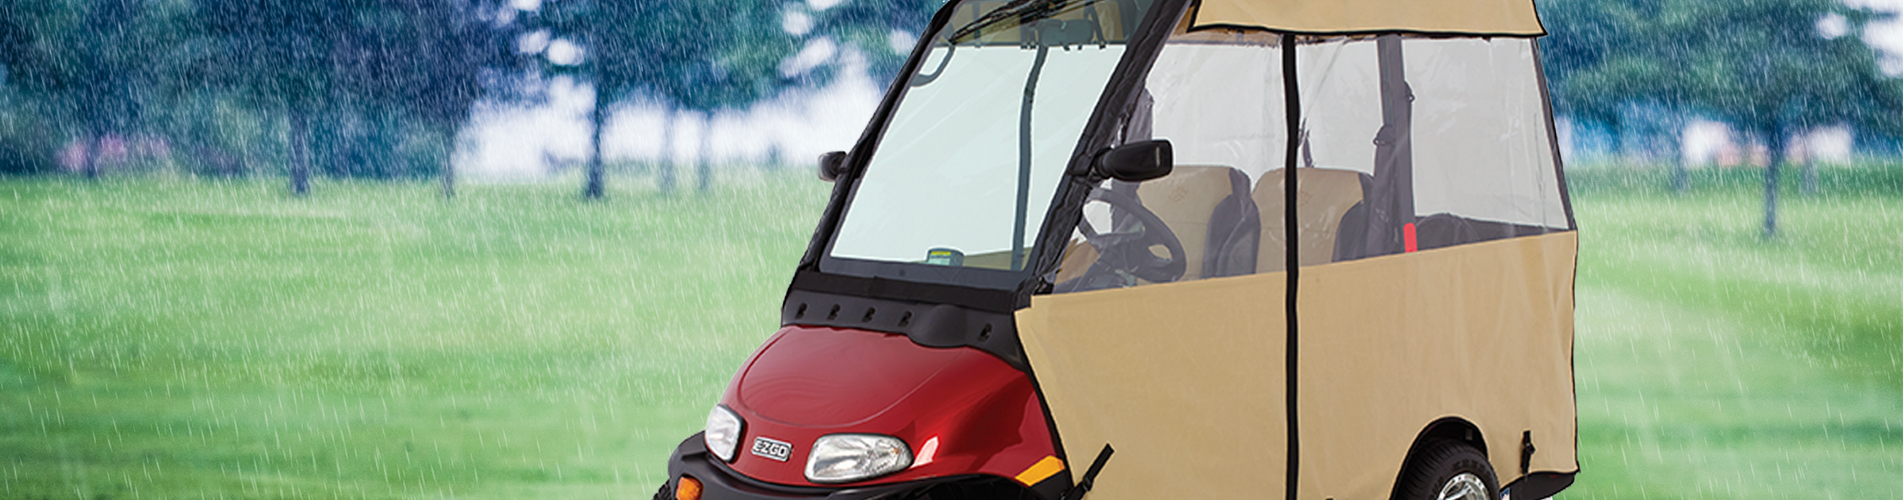 E-Z-GO Golf Cart with Windshield and Enclosure in Rain